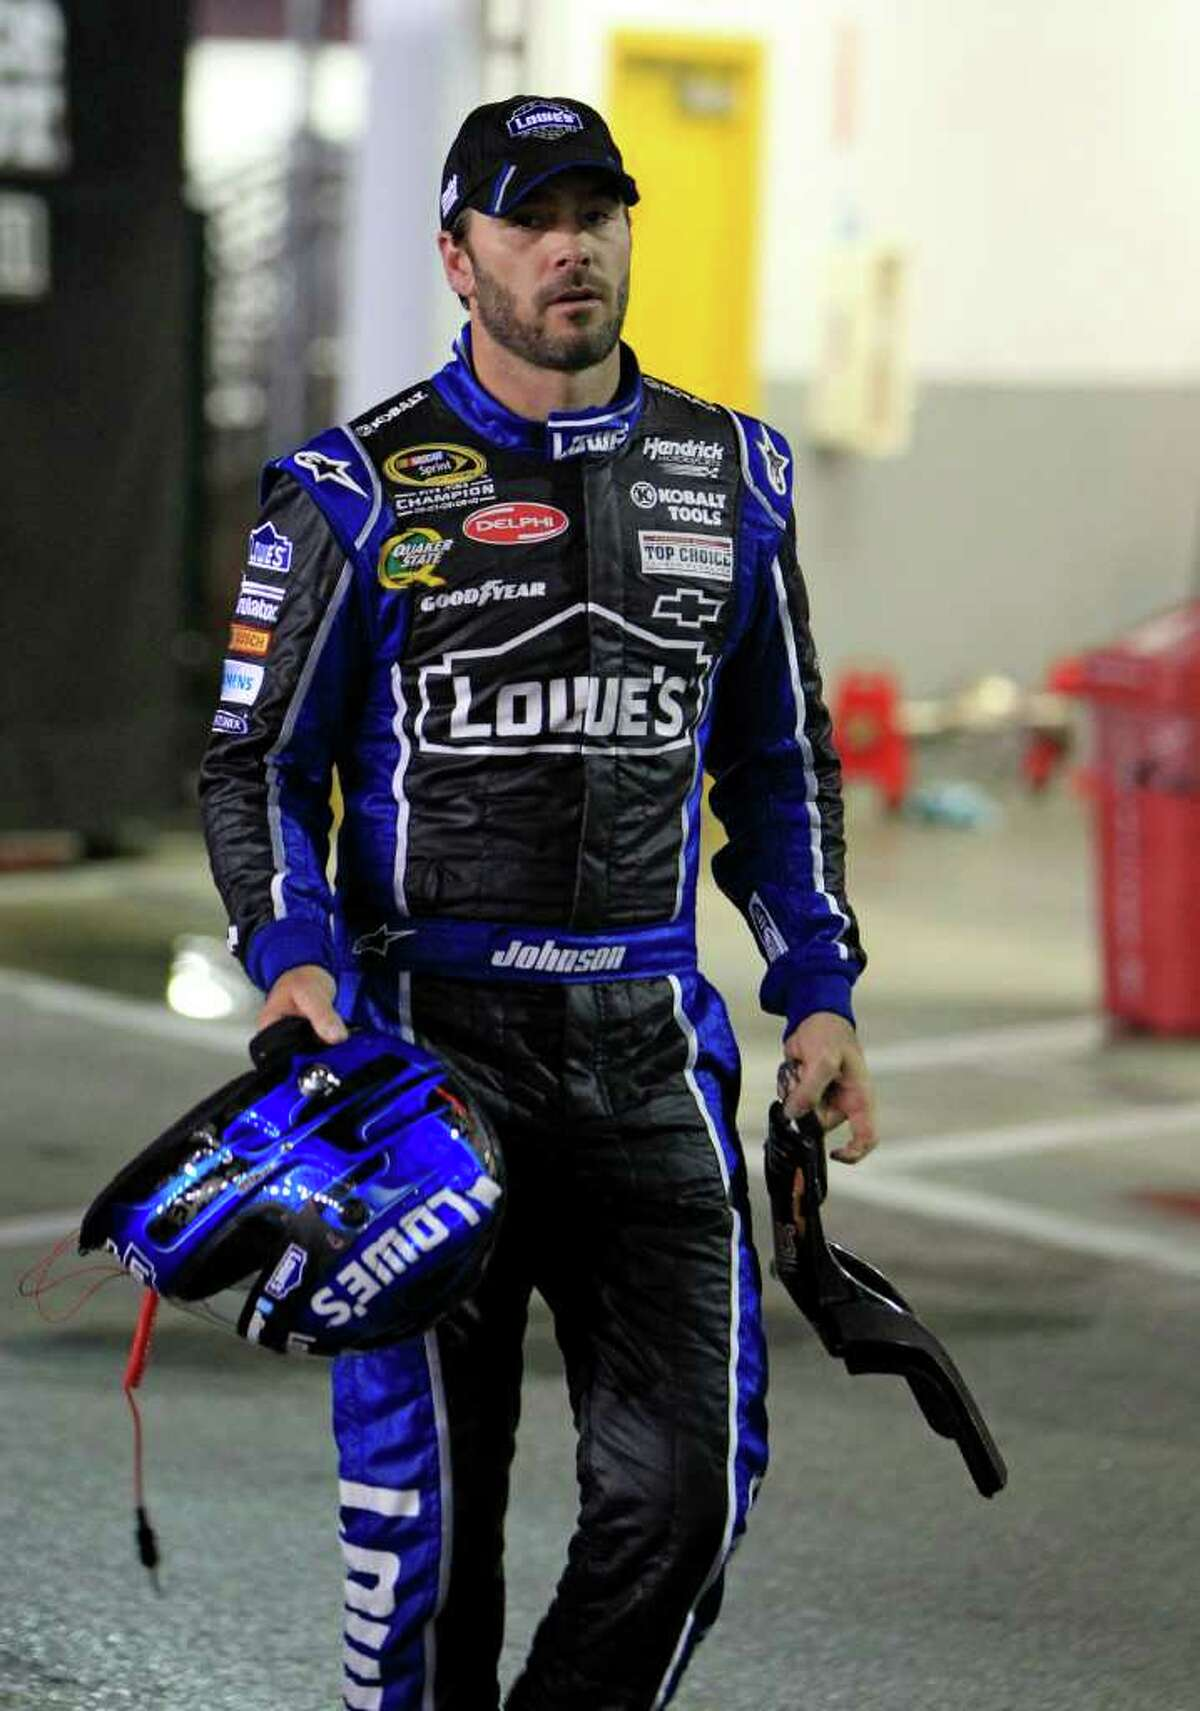 Jimmie Johnson walks to his hauler from the infield care center after he was involved in a crash on the second lap of the NASCAR Daytona 500 auto race at Daytona International Speedway in Daytona Beach, Fla., Monday, Feb. 27, 2012. (AP Photo/John Raoux)